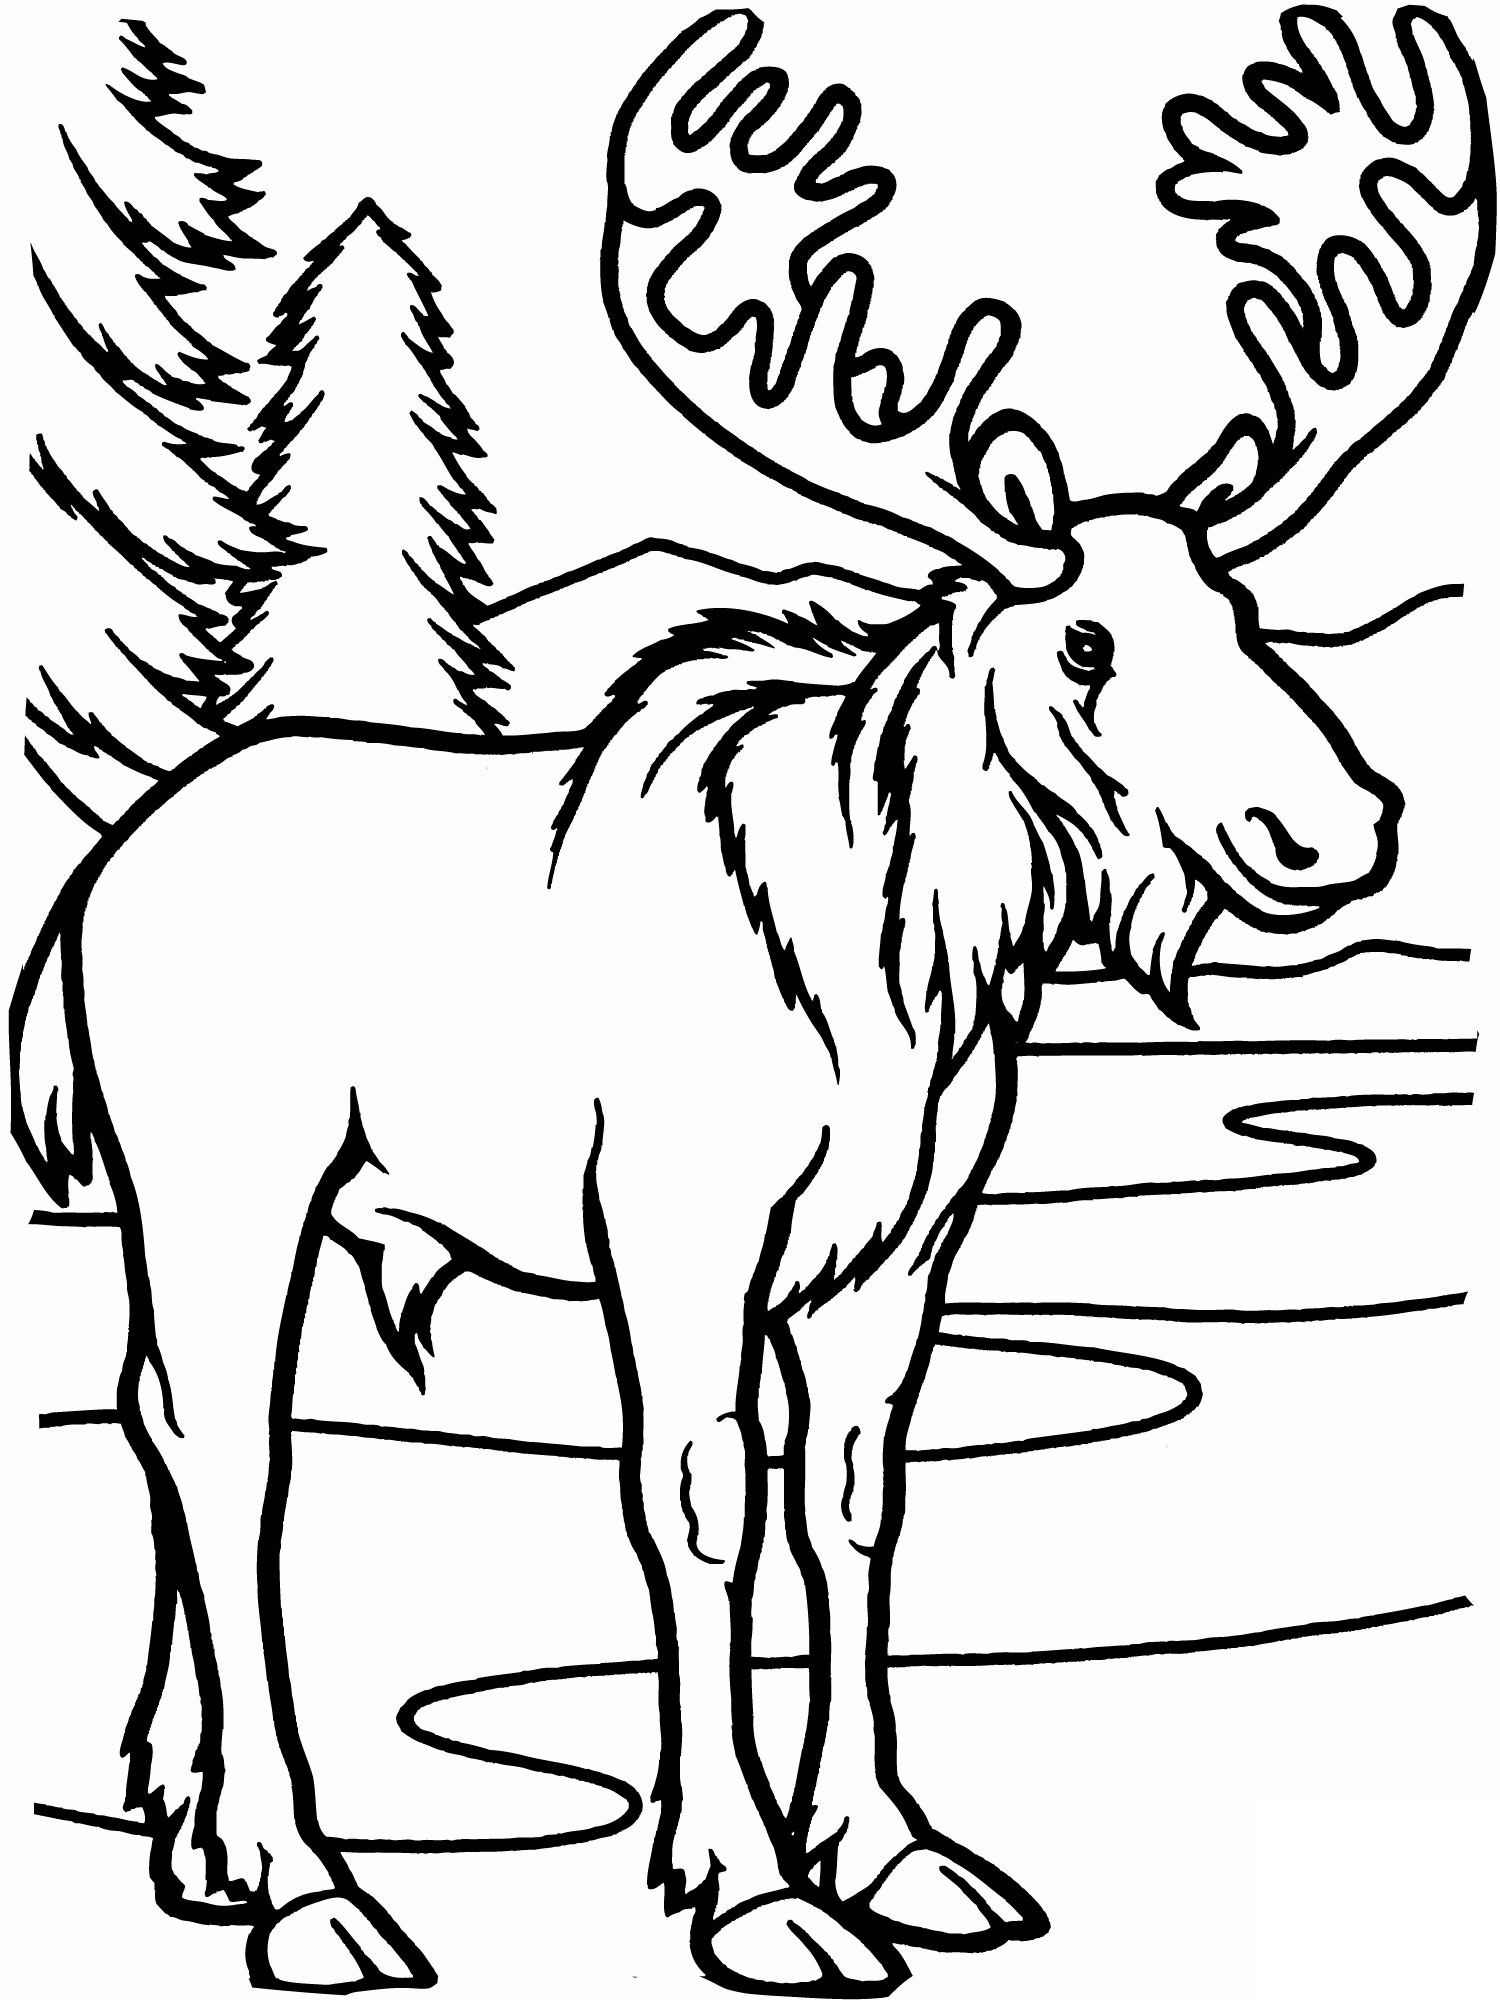 Free Printable Moose Coloring Pages For Kids Animal Coloring Pages Deer Coloring Pages Coloring Pages For Teenagers